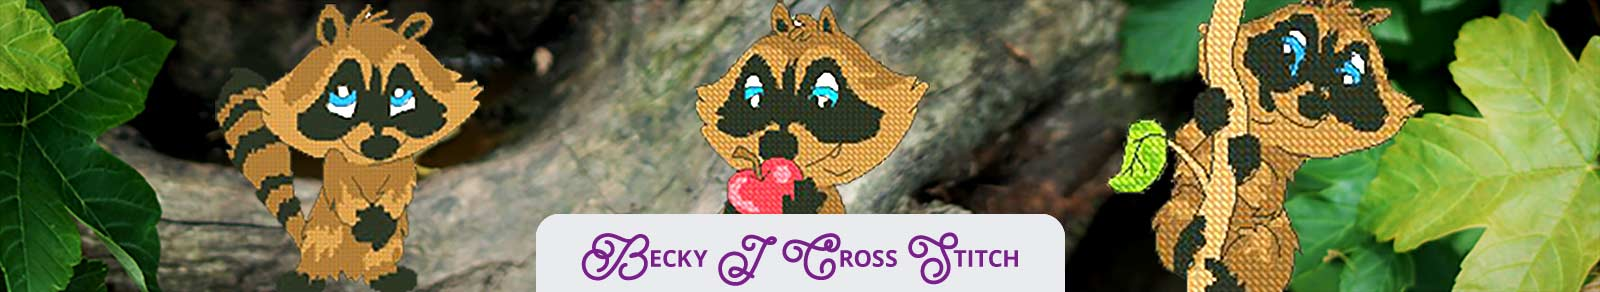 becky j cross stitch